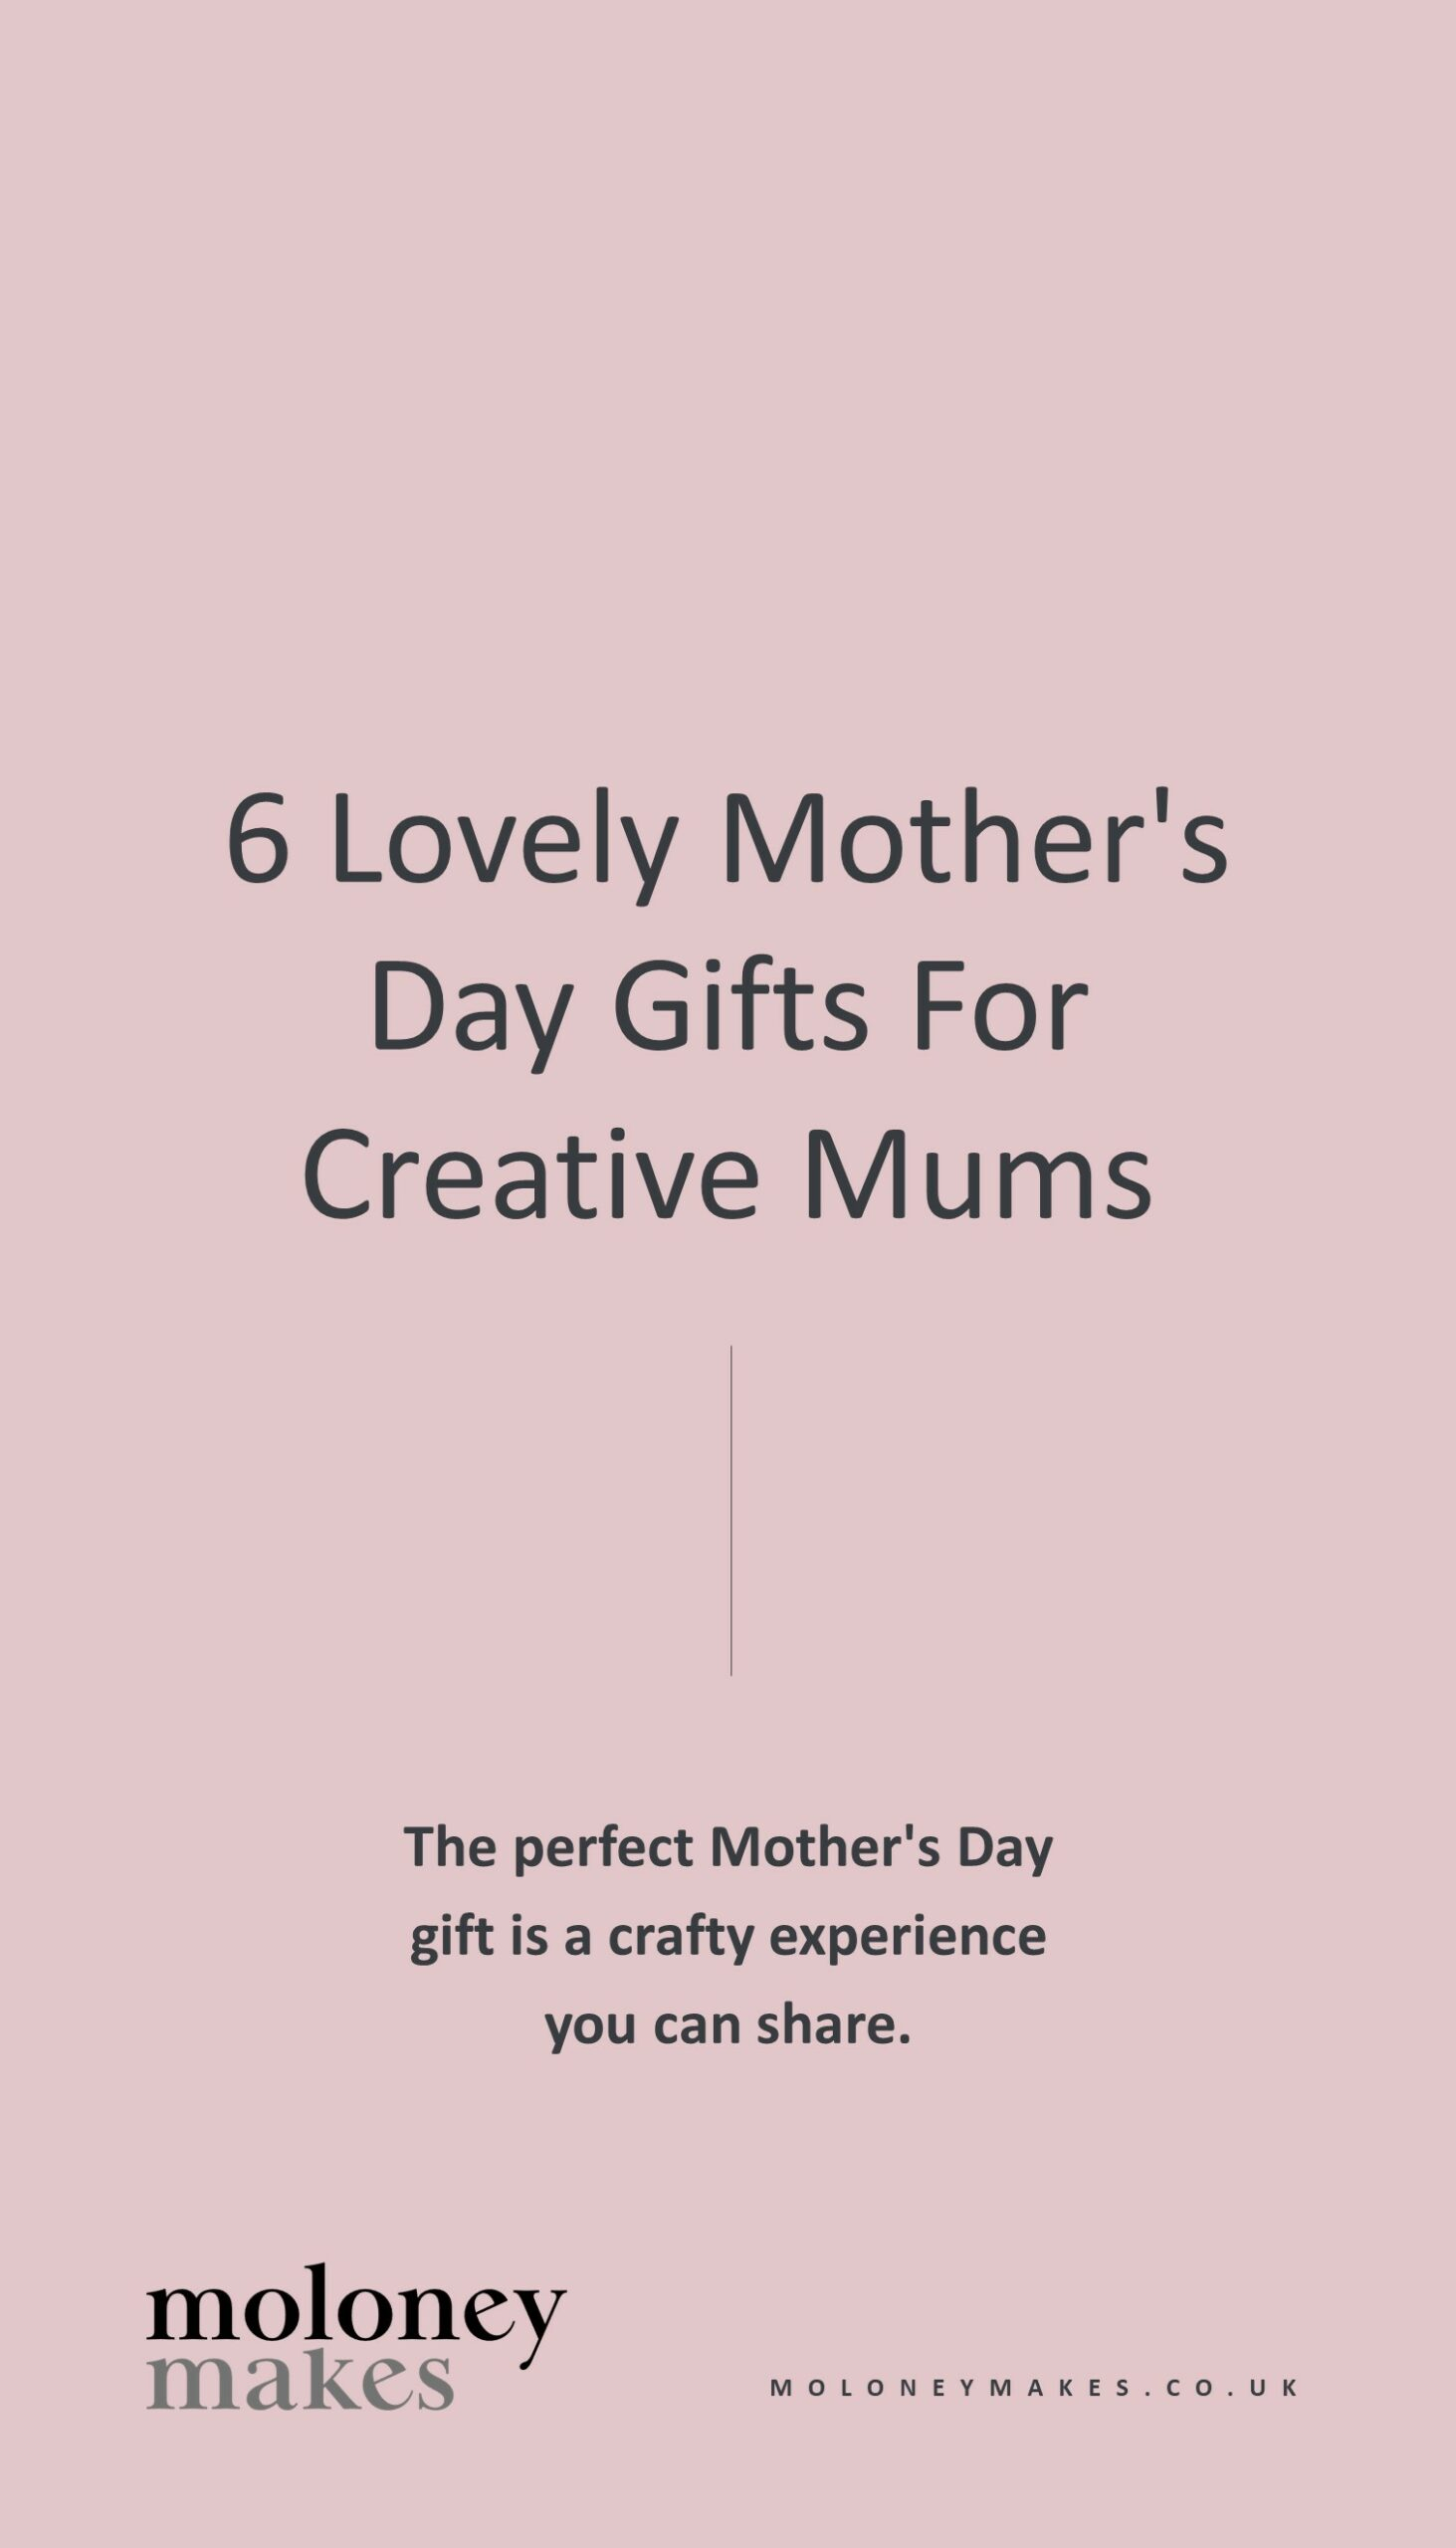 6 lovely mothers day gifts for creative mums blog post pinterest graphic